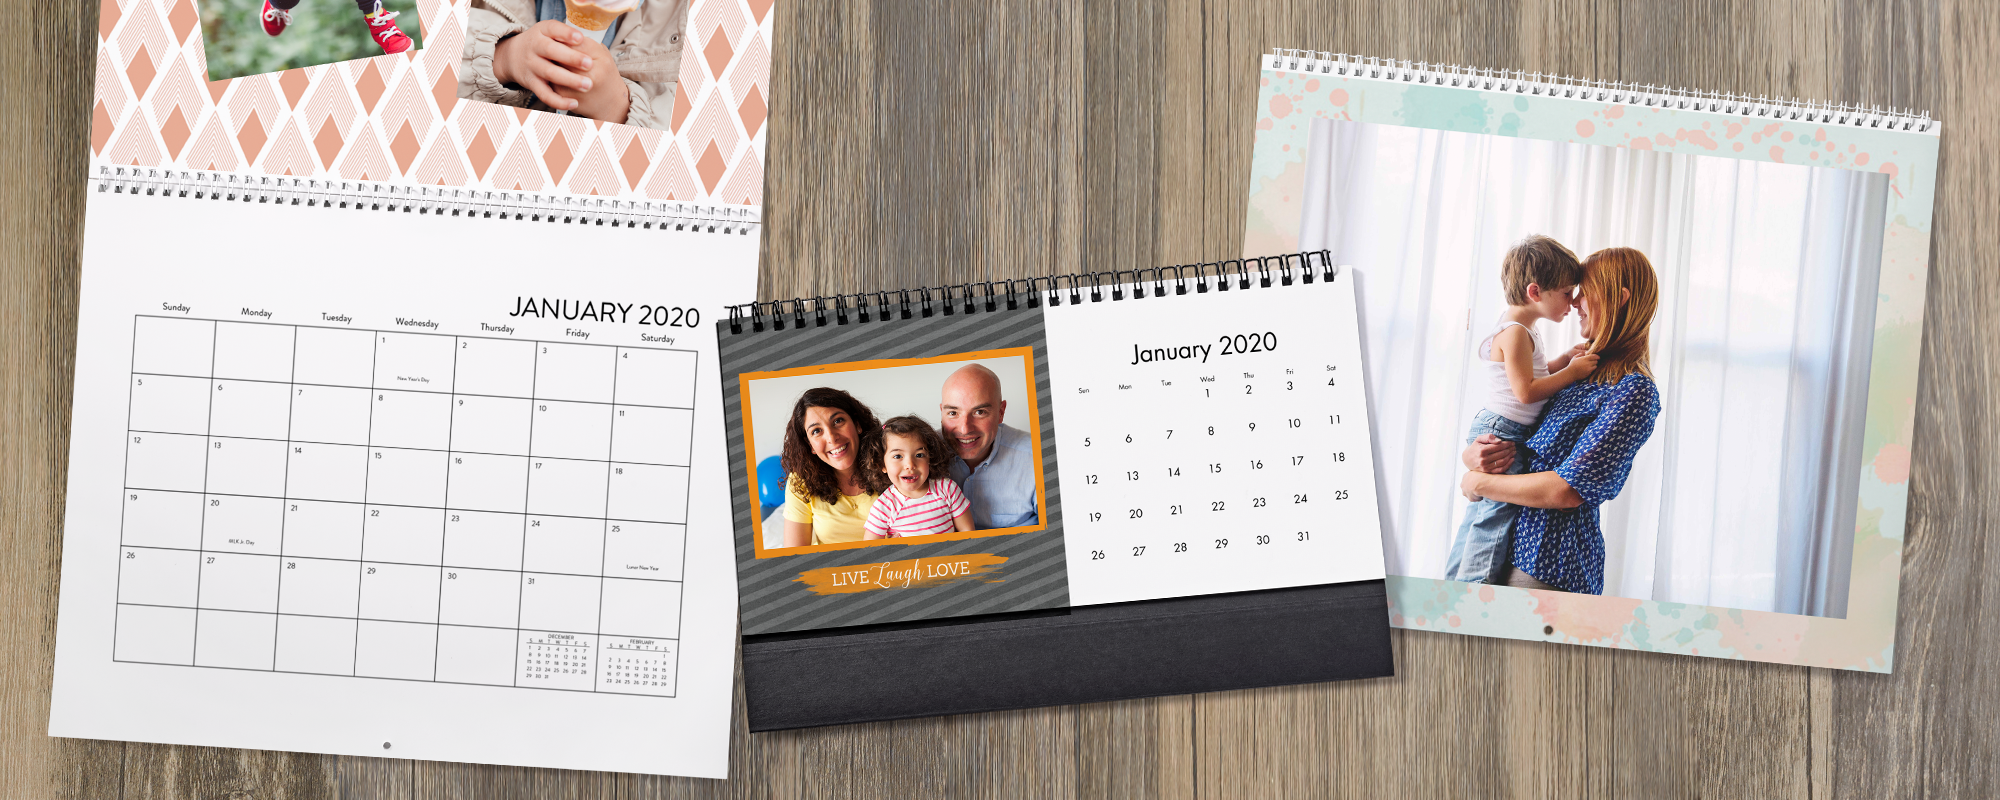 Design & personalize your room with Photo calendars!